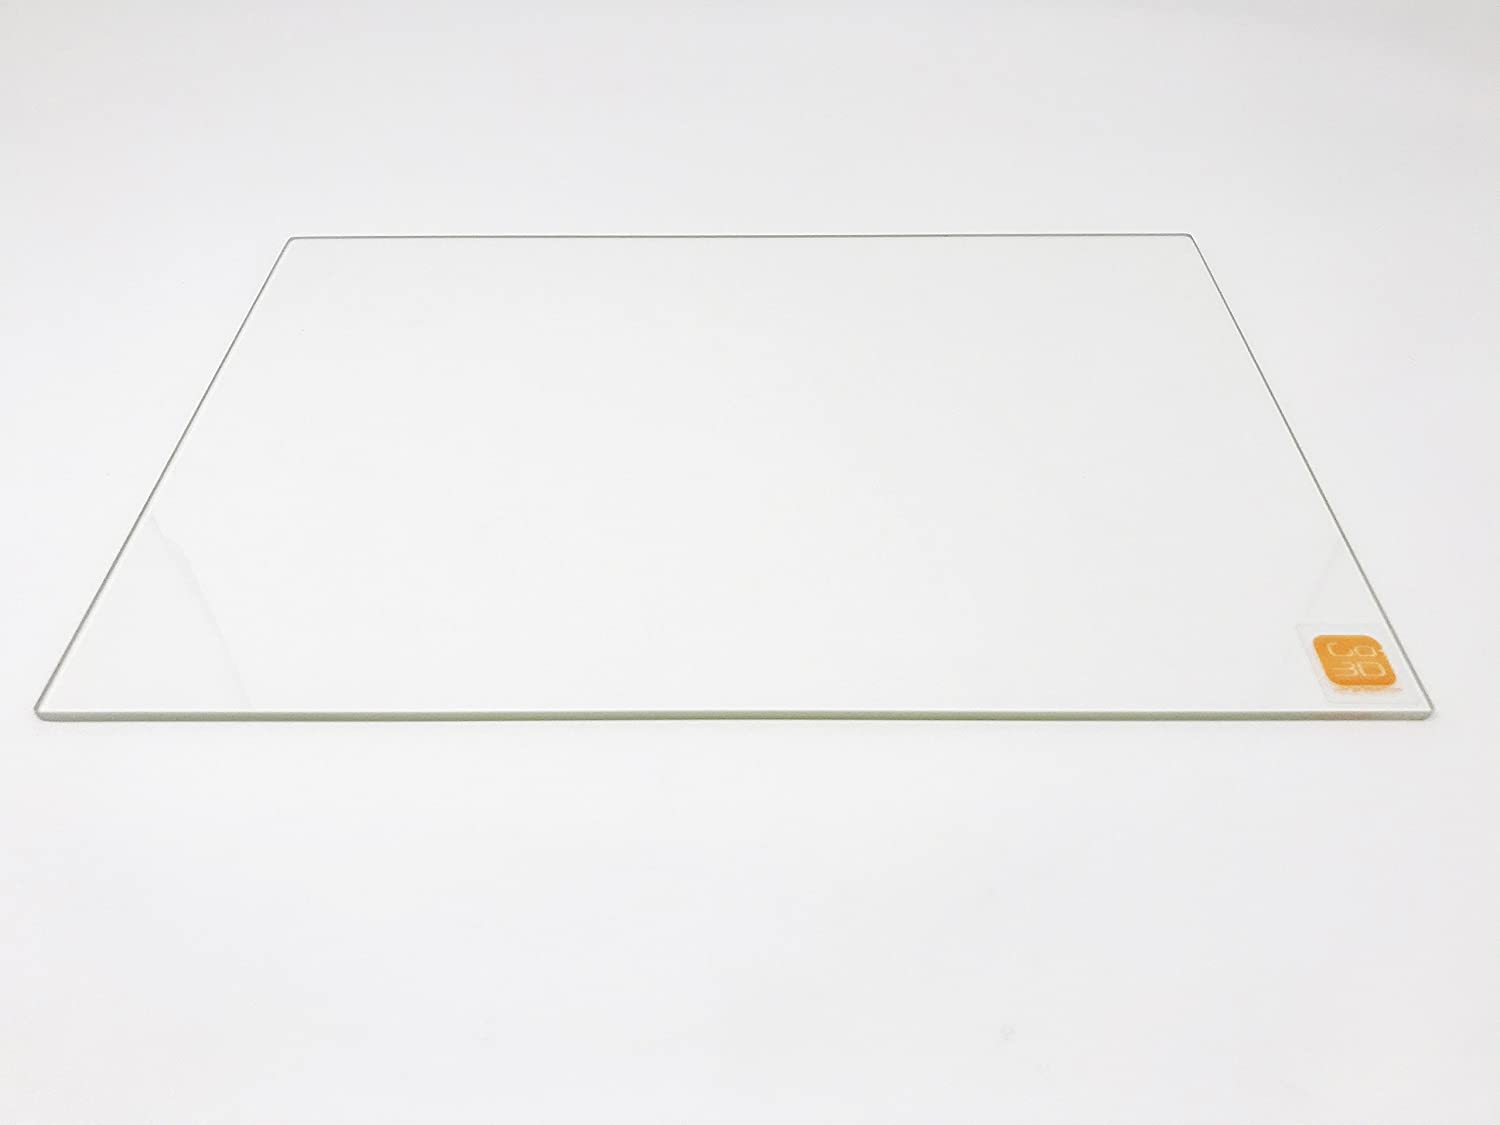 214mm x 314mm Borosilicate Glass Plate//Bed Flat Polished Edge for 200x300 Heated Bed 3D Printers